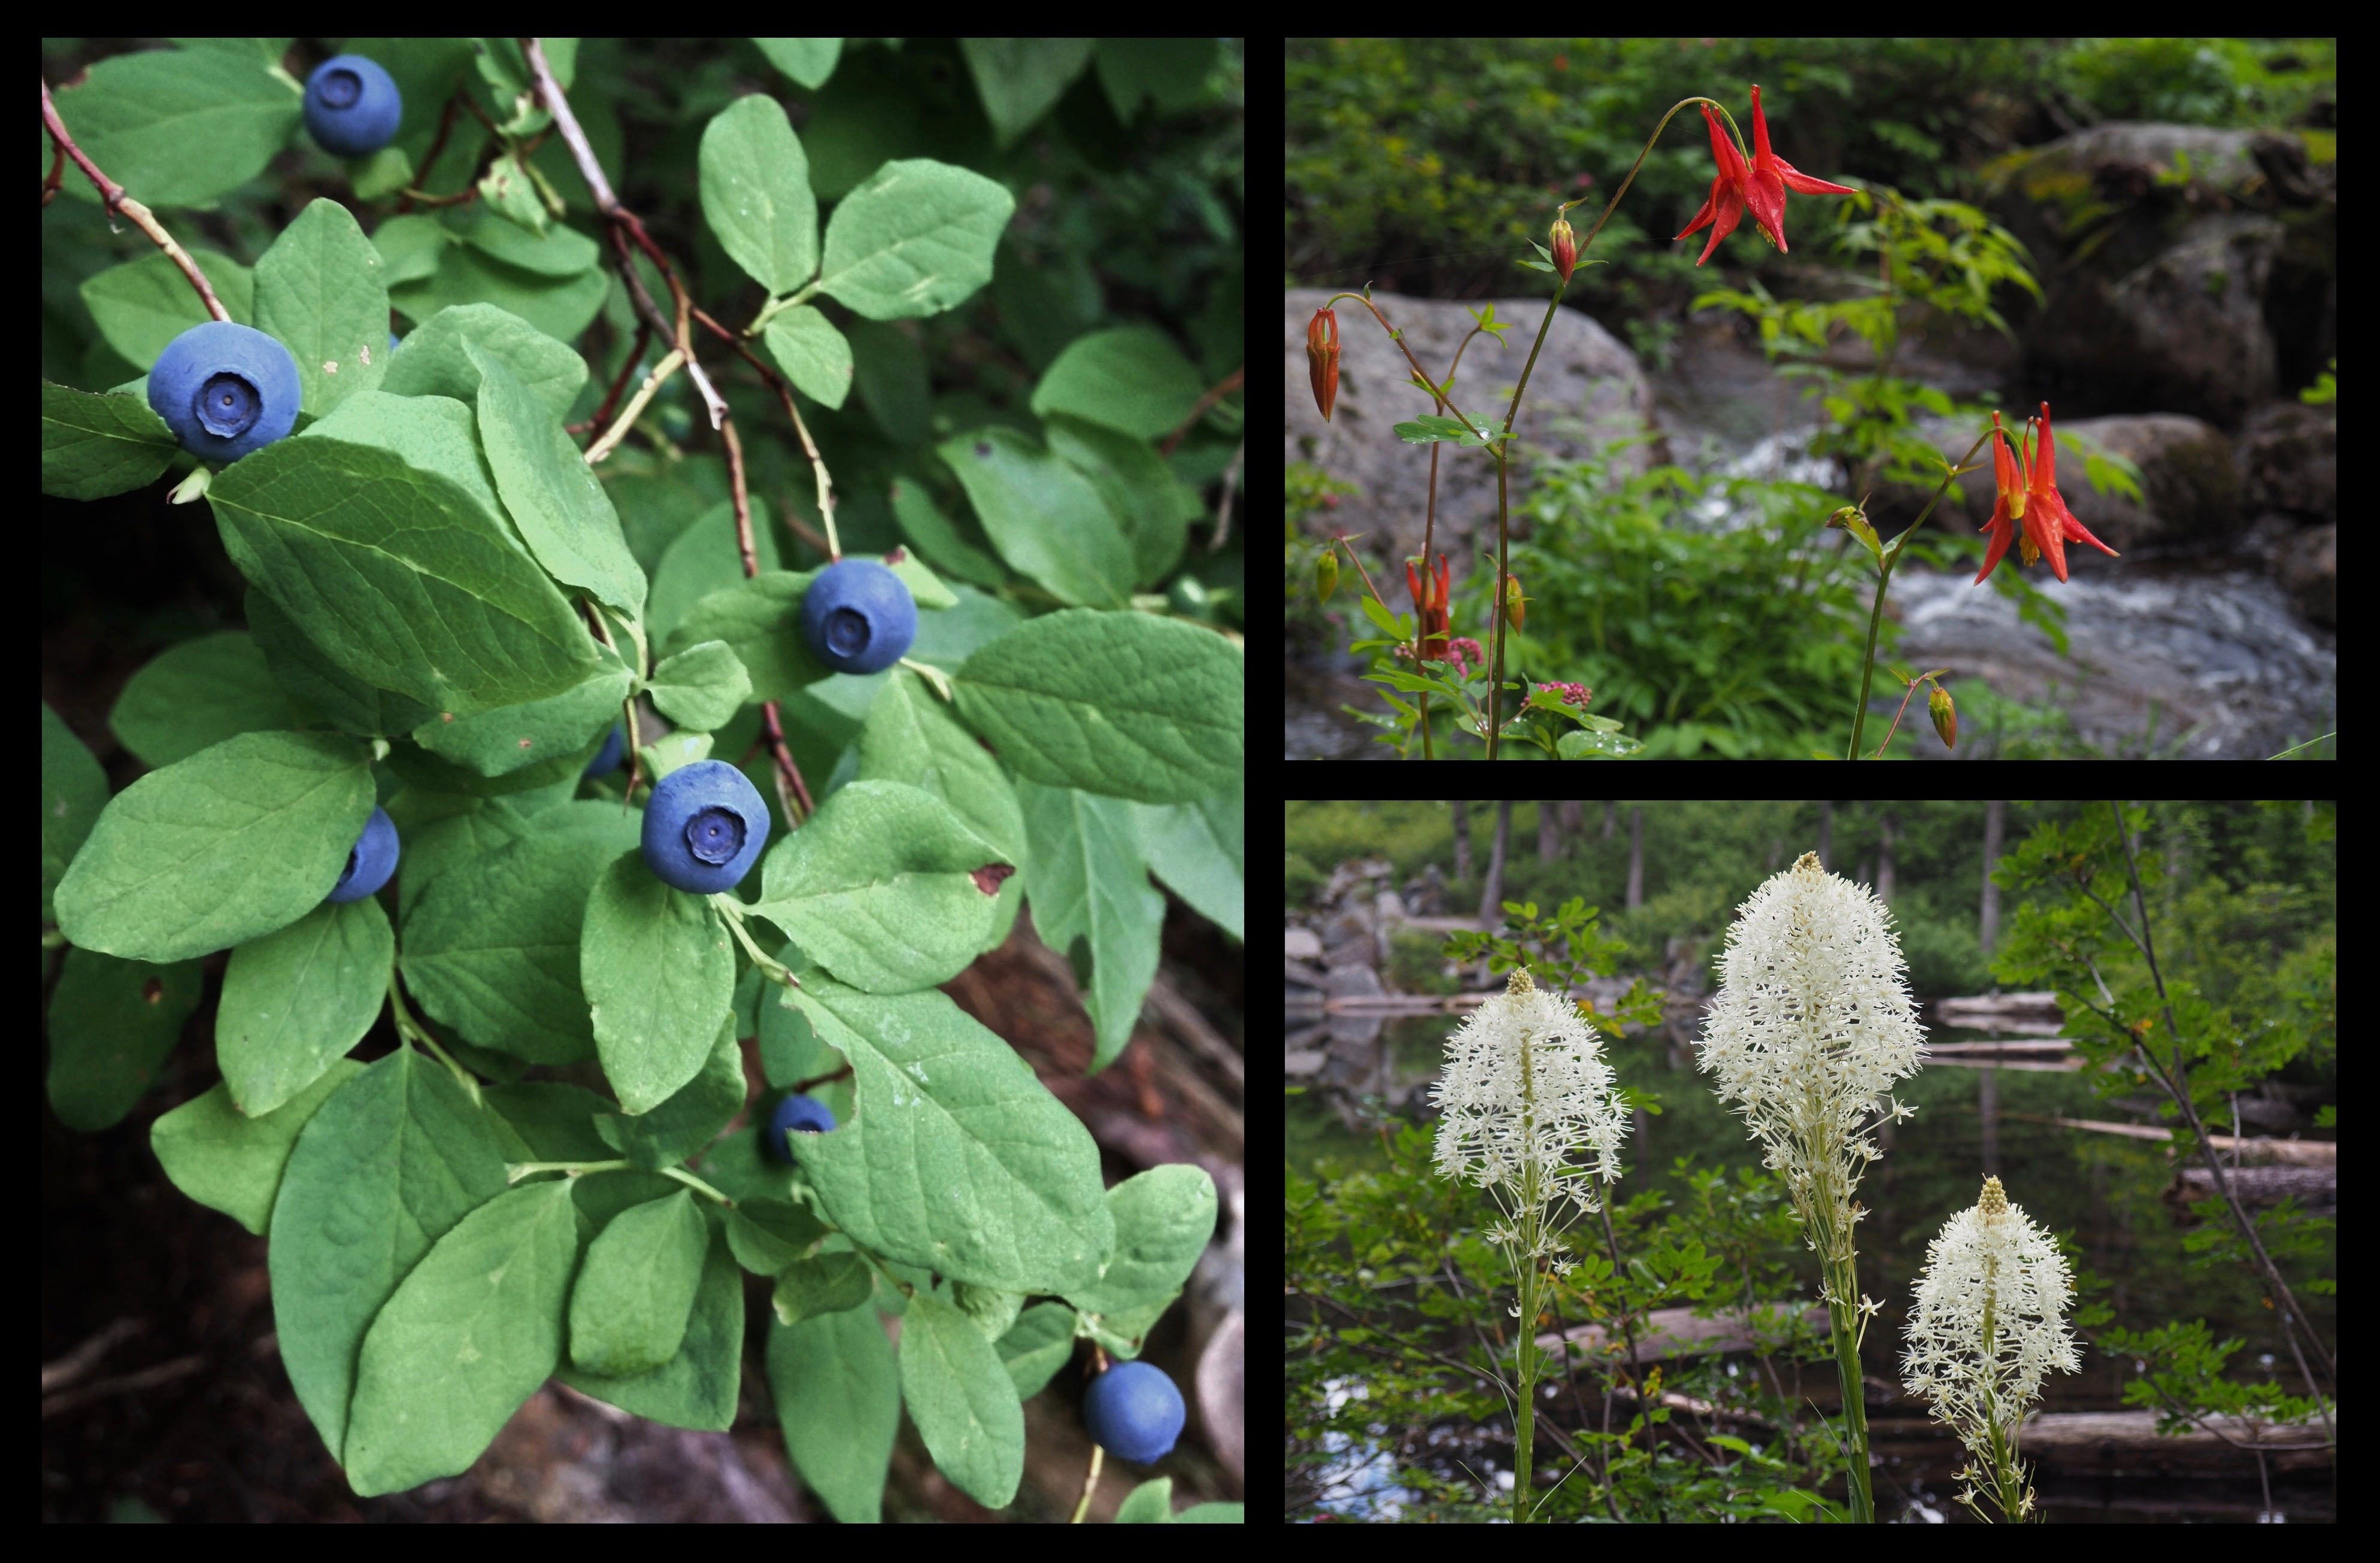 Along Mason Lake's banks, look for luscious blueberries and huckleberries (here, the tart-tasting, upward-facing berries of Vaccinium ovalifolium, called both the oval-leaved blueberry and oval-leaved huckleberry) (left); western, or, Sitka columbines (Aquilegia formosa) dangling over Mason Creek's newborn stream (upper right); and bottlebrush blooms of beargrass (Xerophyllum tenax) lining the shore (lower right). Ira Spring Trail, August 18, 2013 and July 09, 2016.